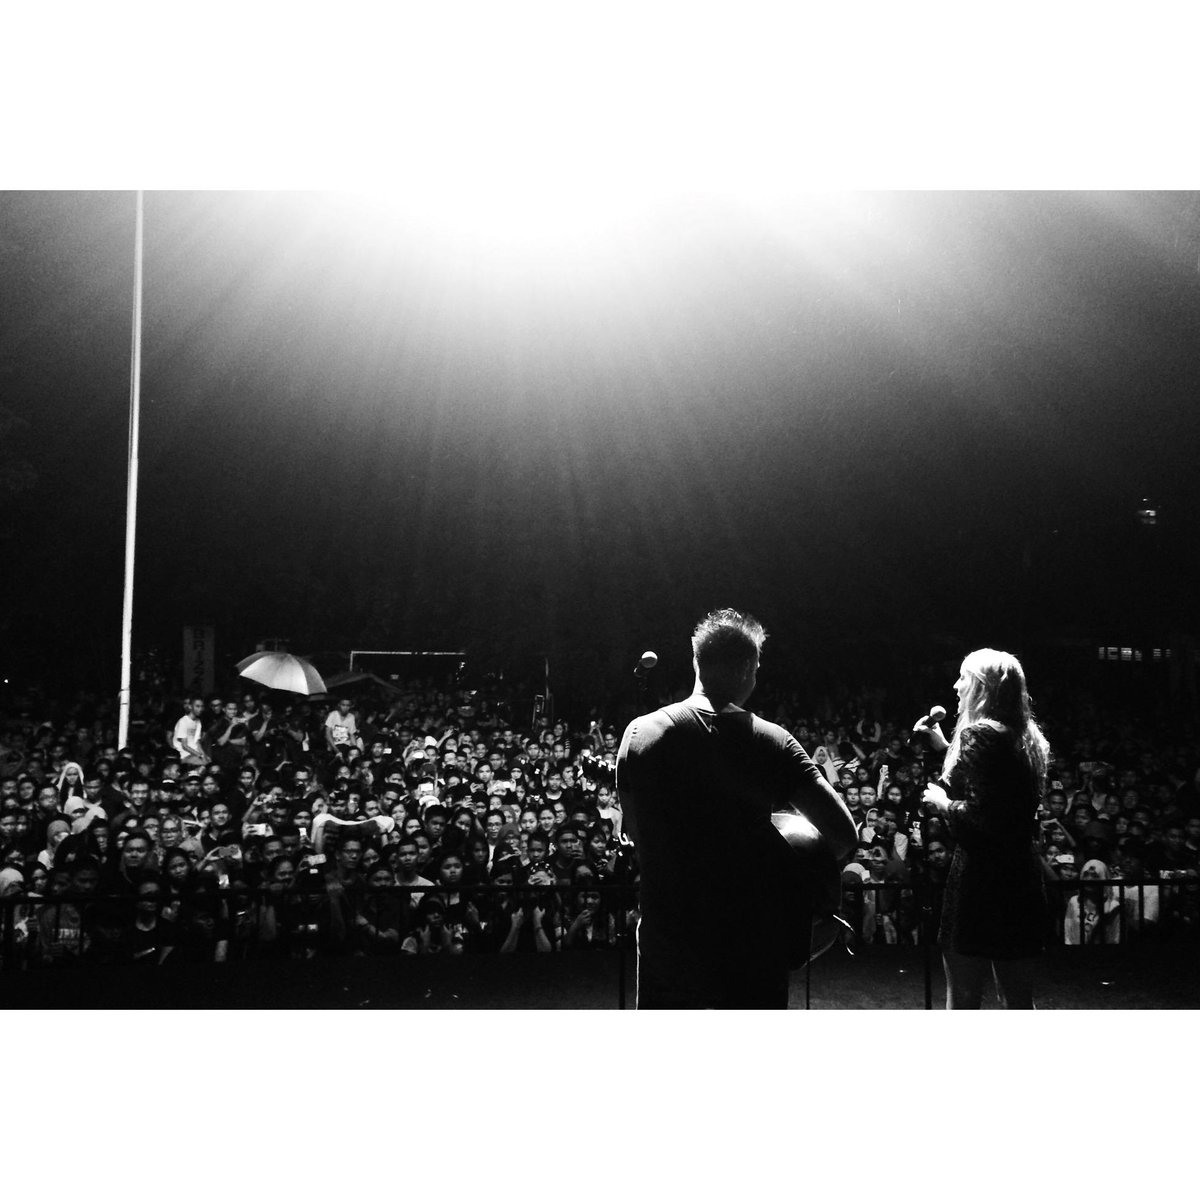 Makassar! We love you. Thanks for hanging out with us in the pouring rain.